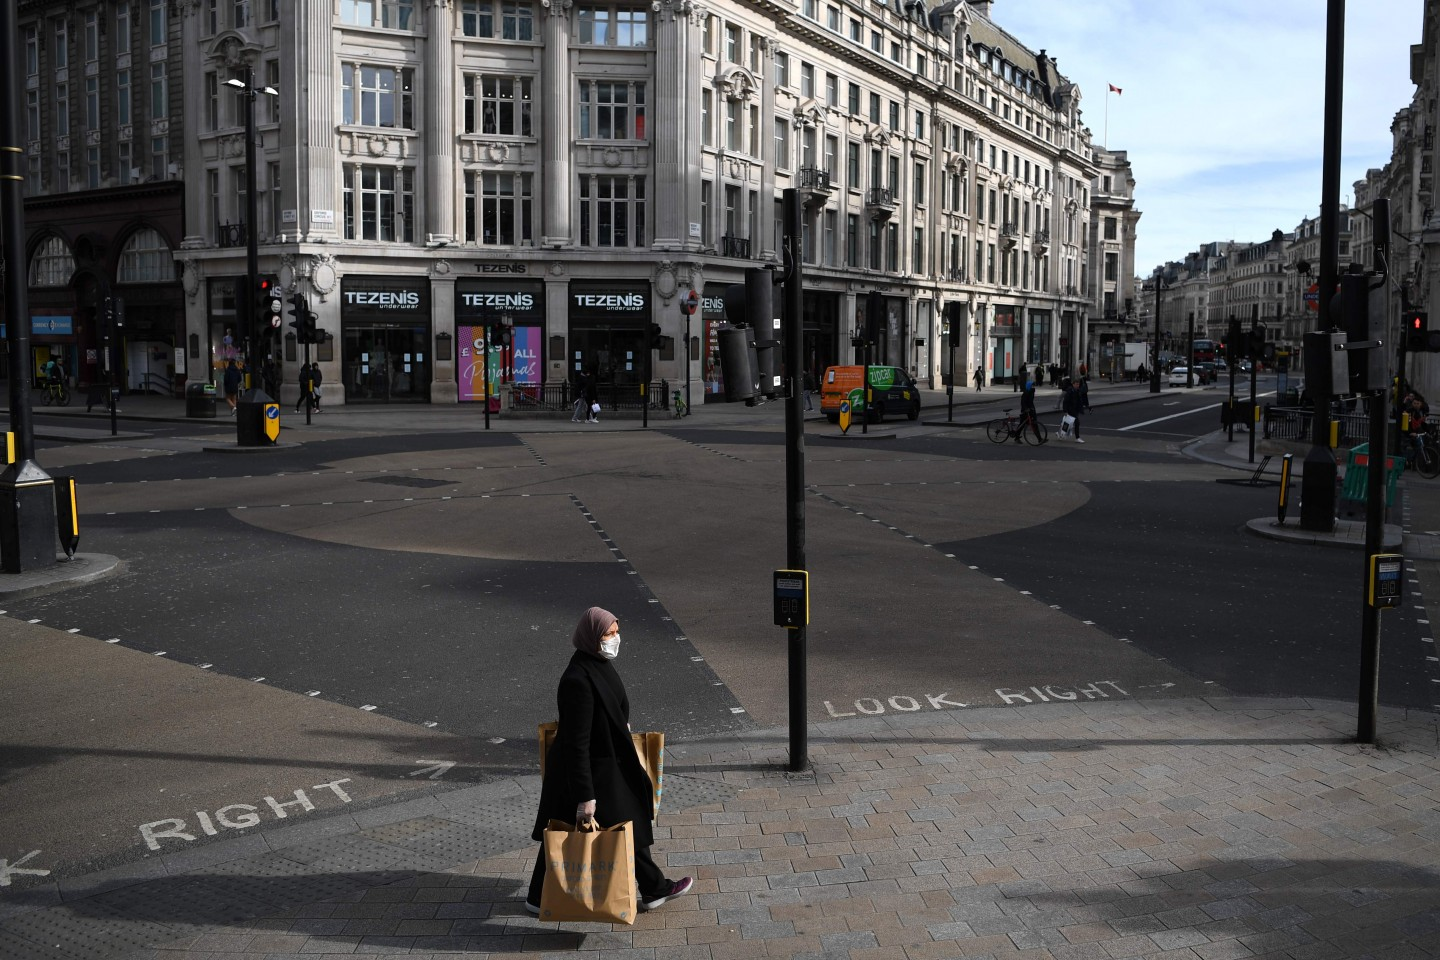 A woman wearing a protective face mask walks through a quiet Oxford Circus in central London on the afternoon of 21 March 2020 (Daniel Leal-Olivas/AFP)